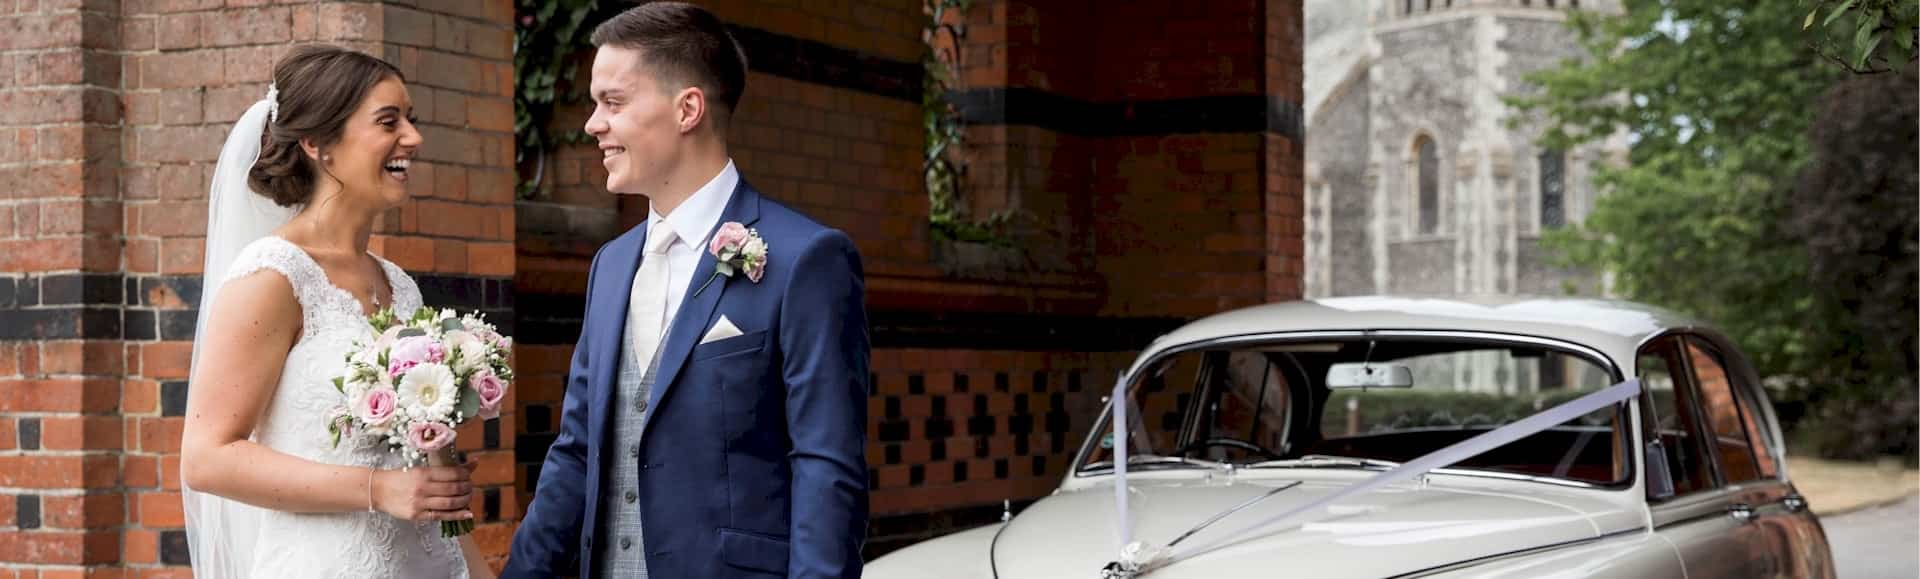 Jaguar Mk2 together with the Bride and Groom